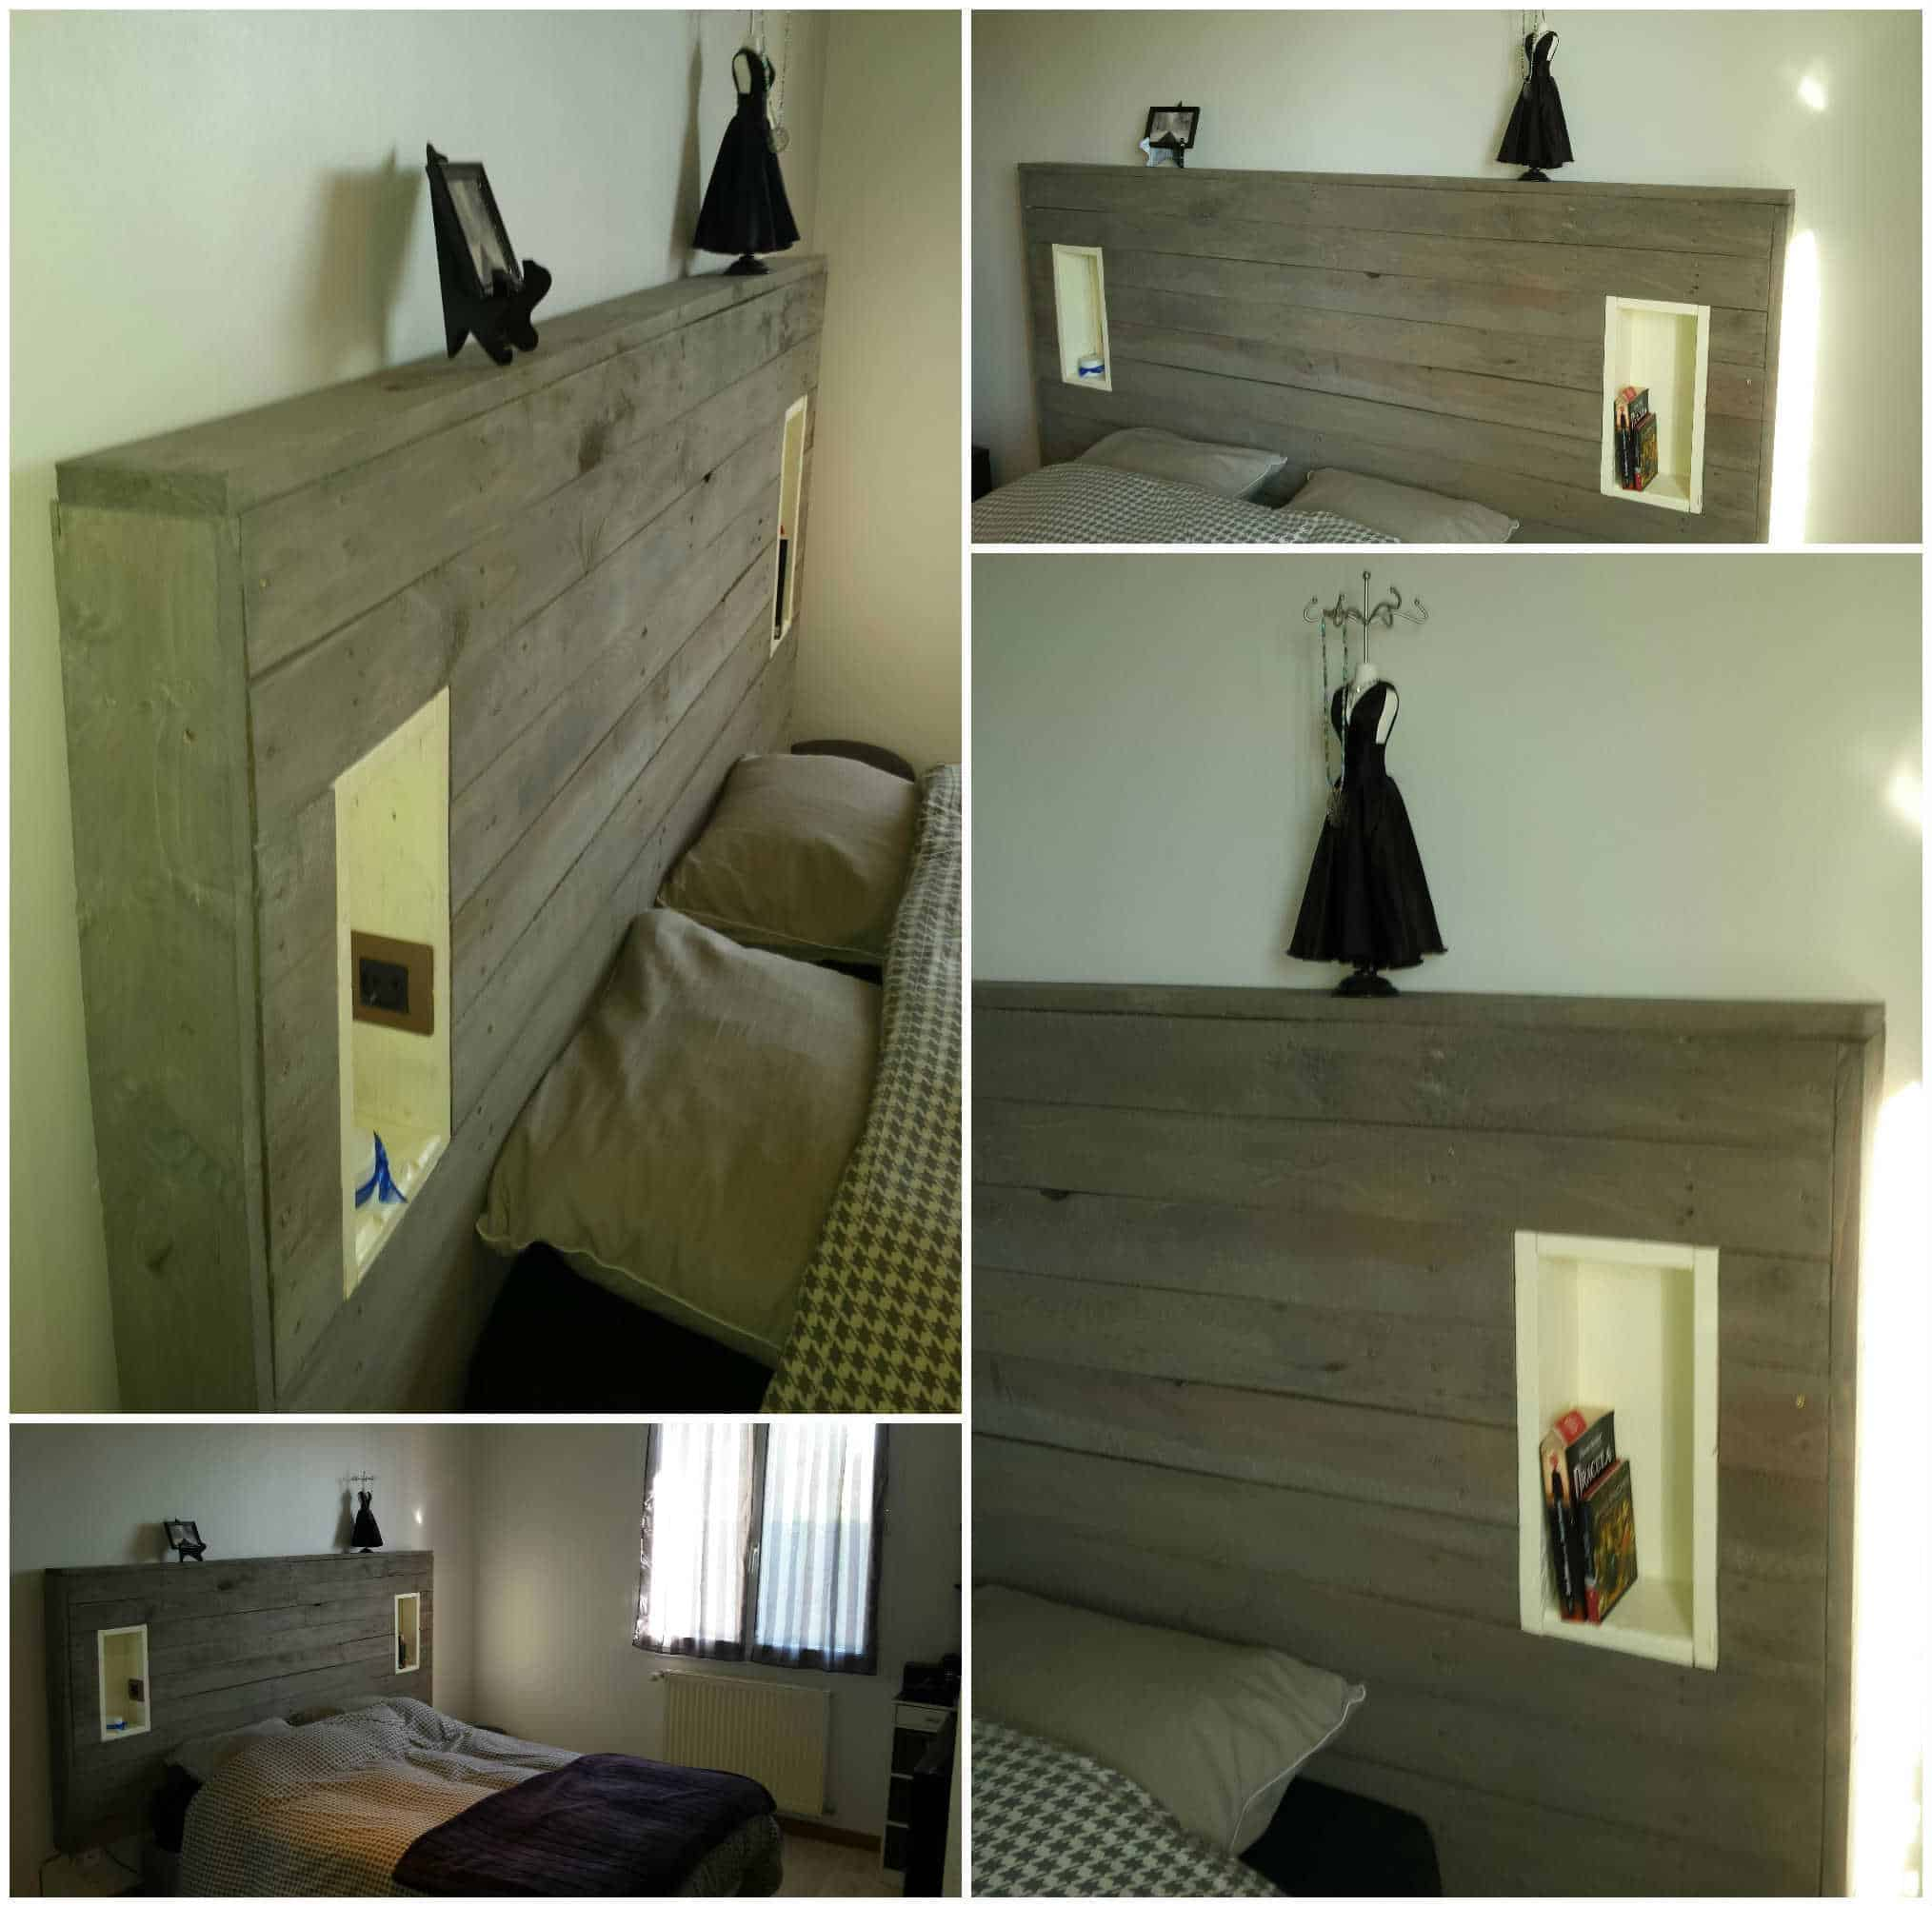 My Pallet Headboard With Lights & Electric Outlet • 1001 Pallets